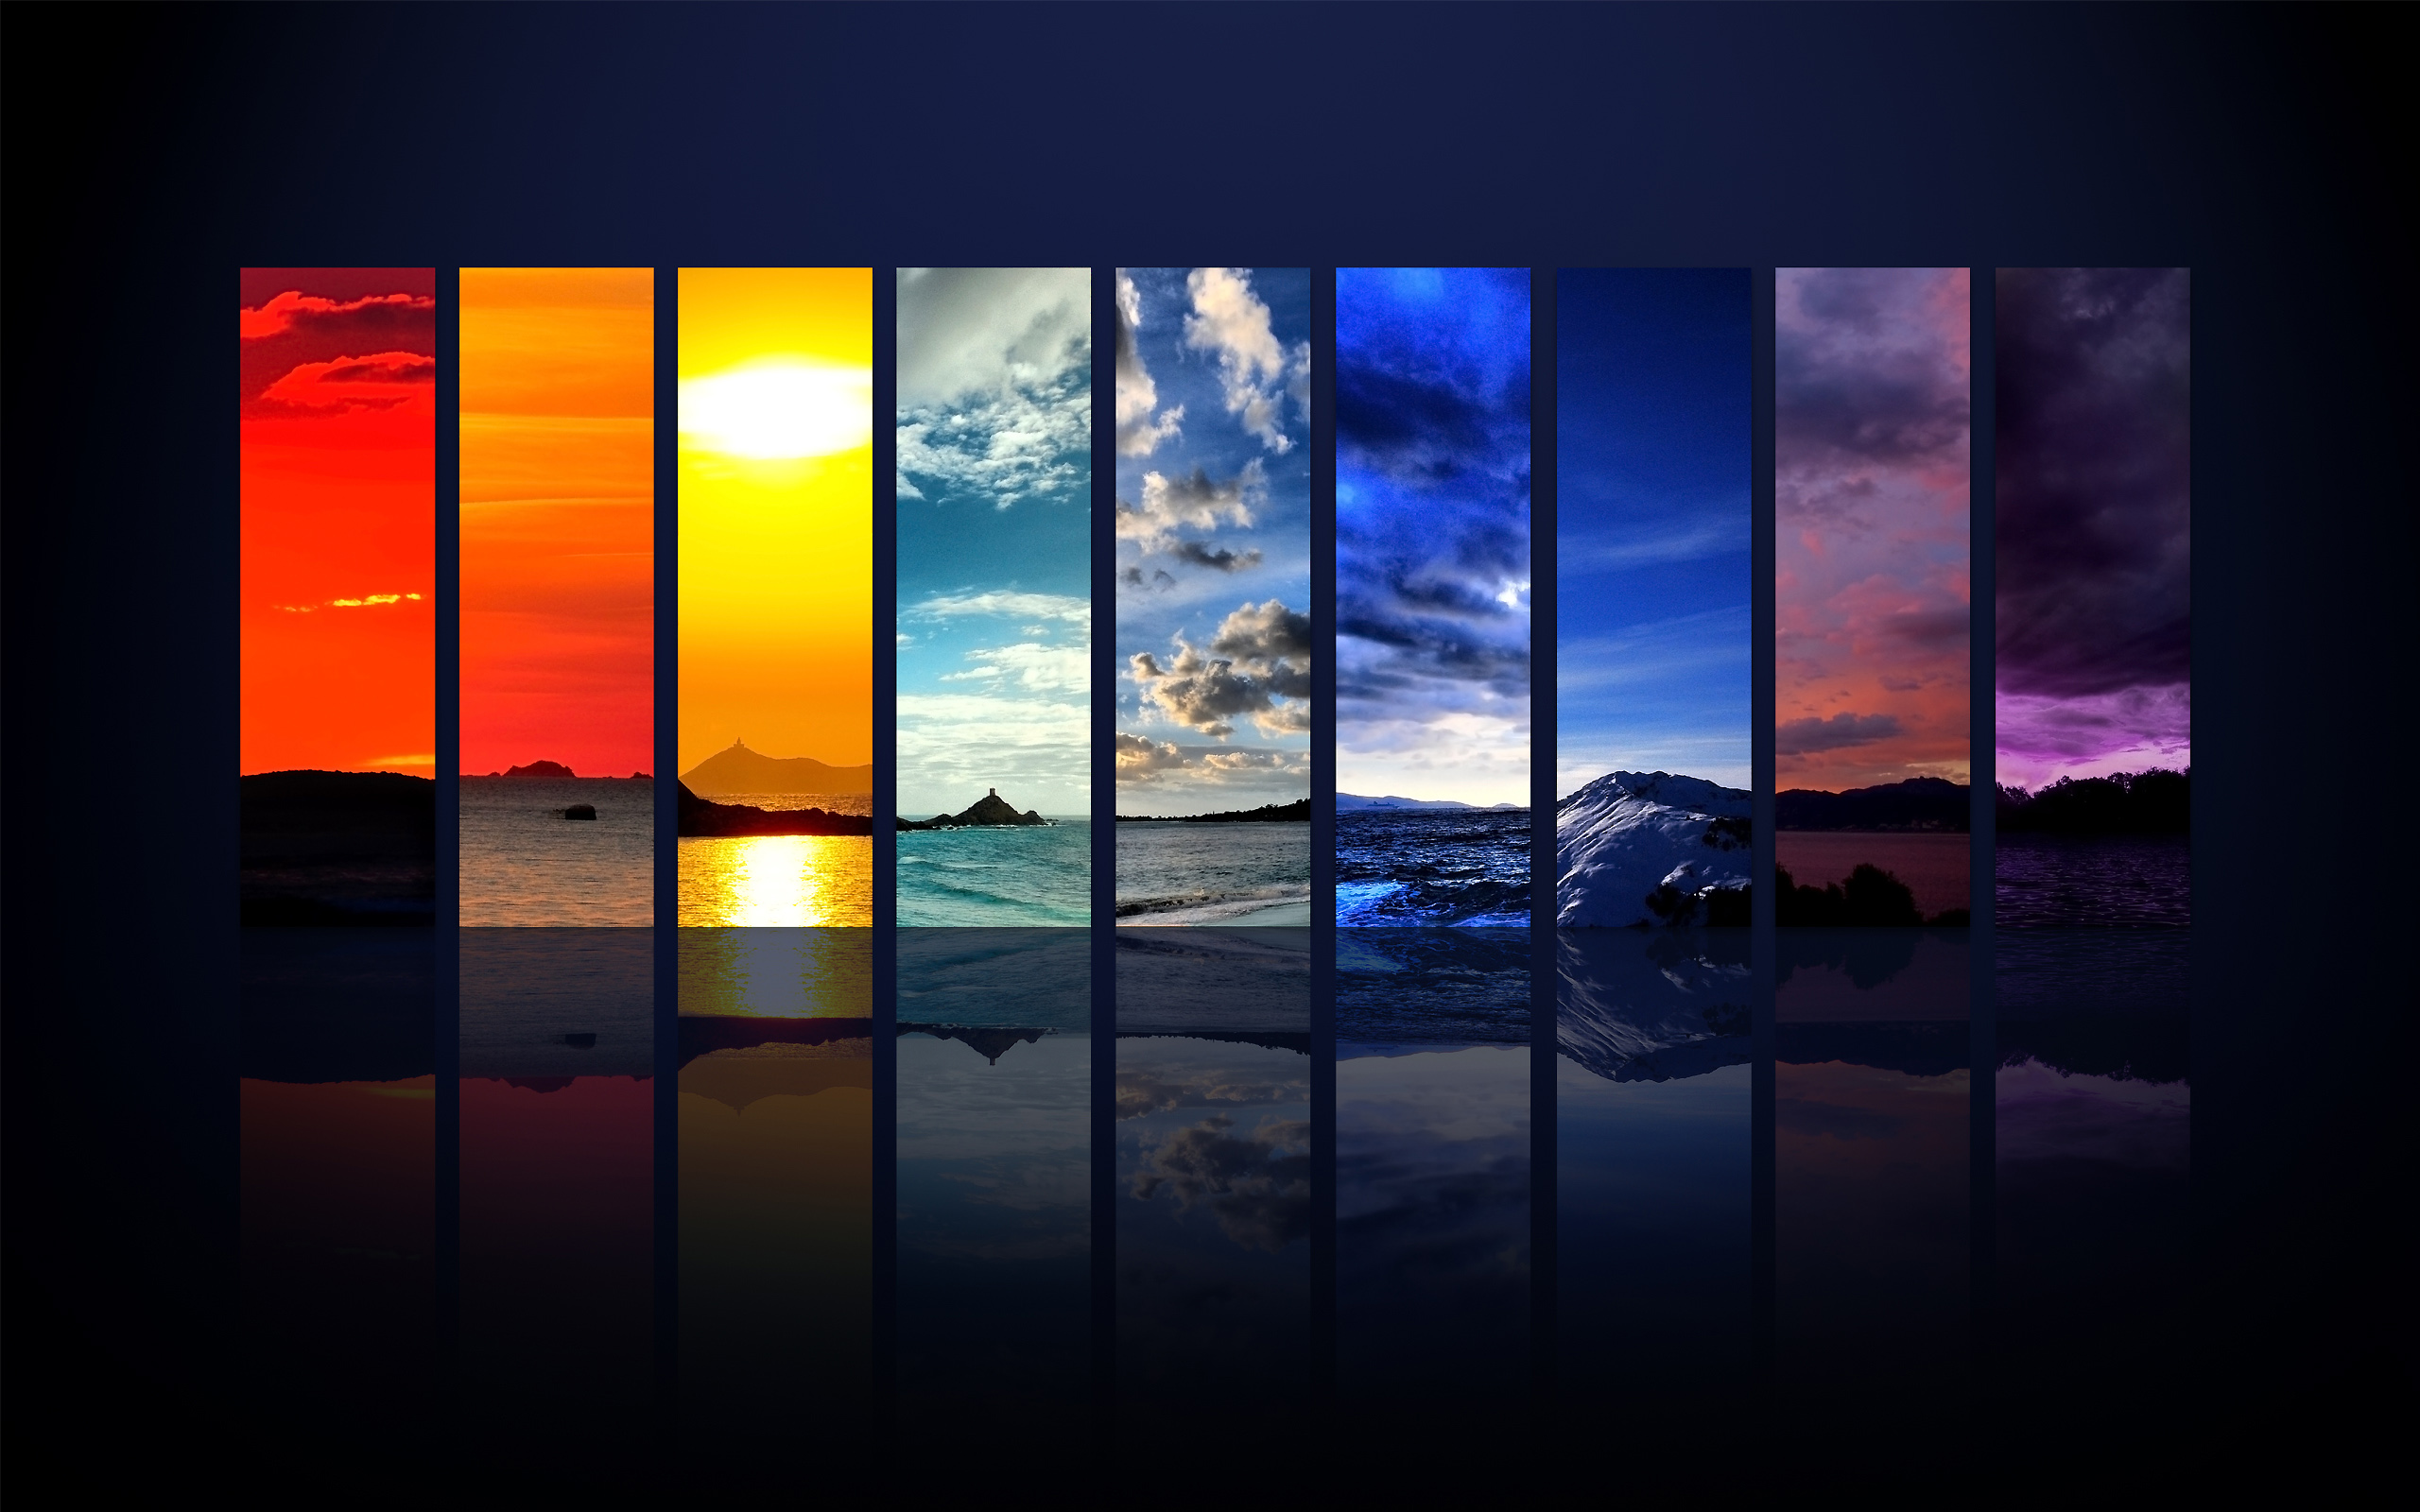 259 season hd wallpapers background images wallpaper abyss hd wallpaper background image id54700 voltagebd Choice Image